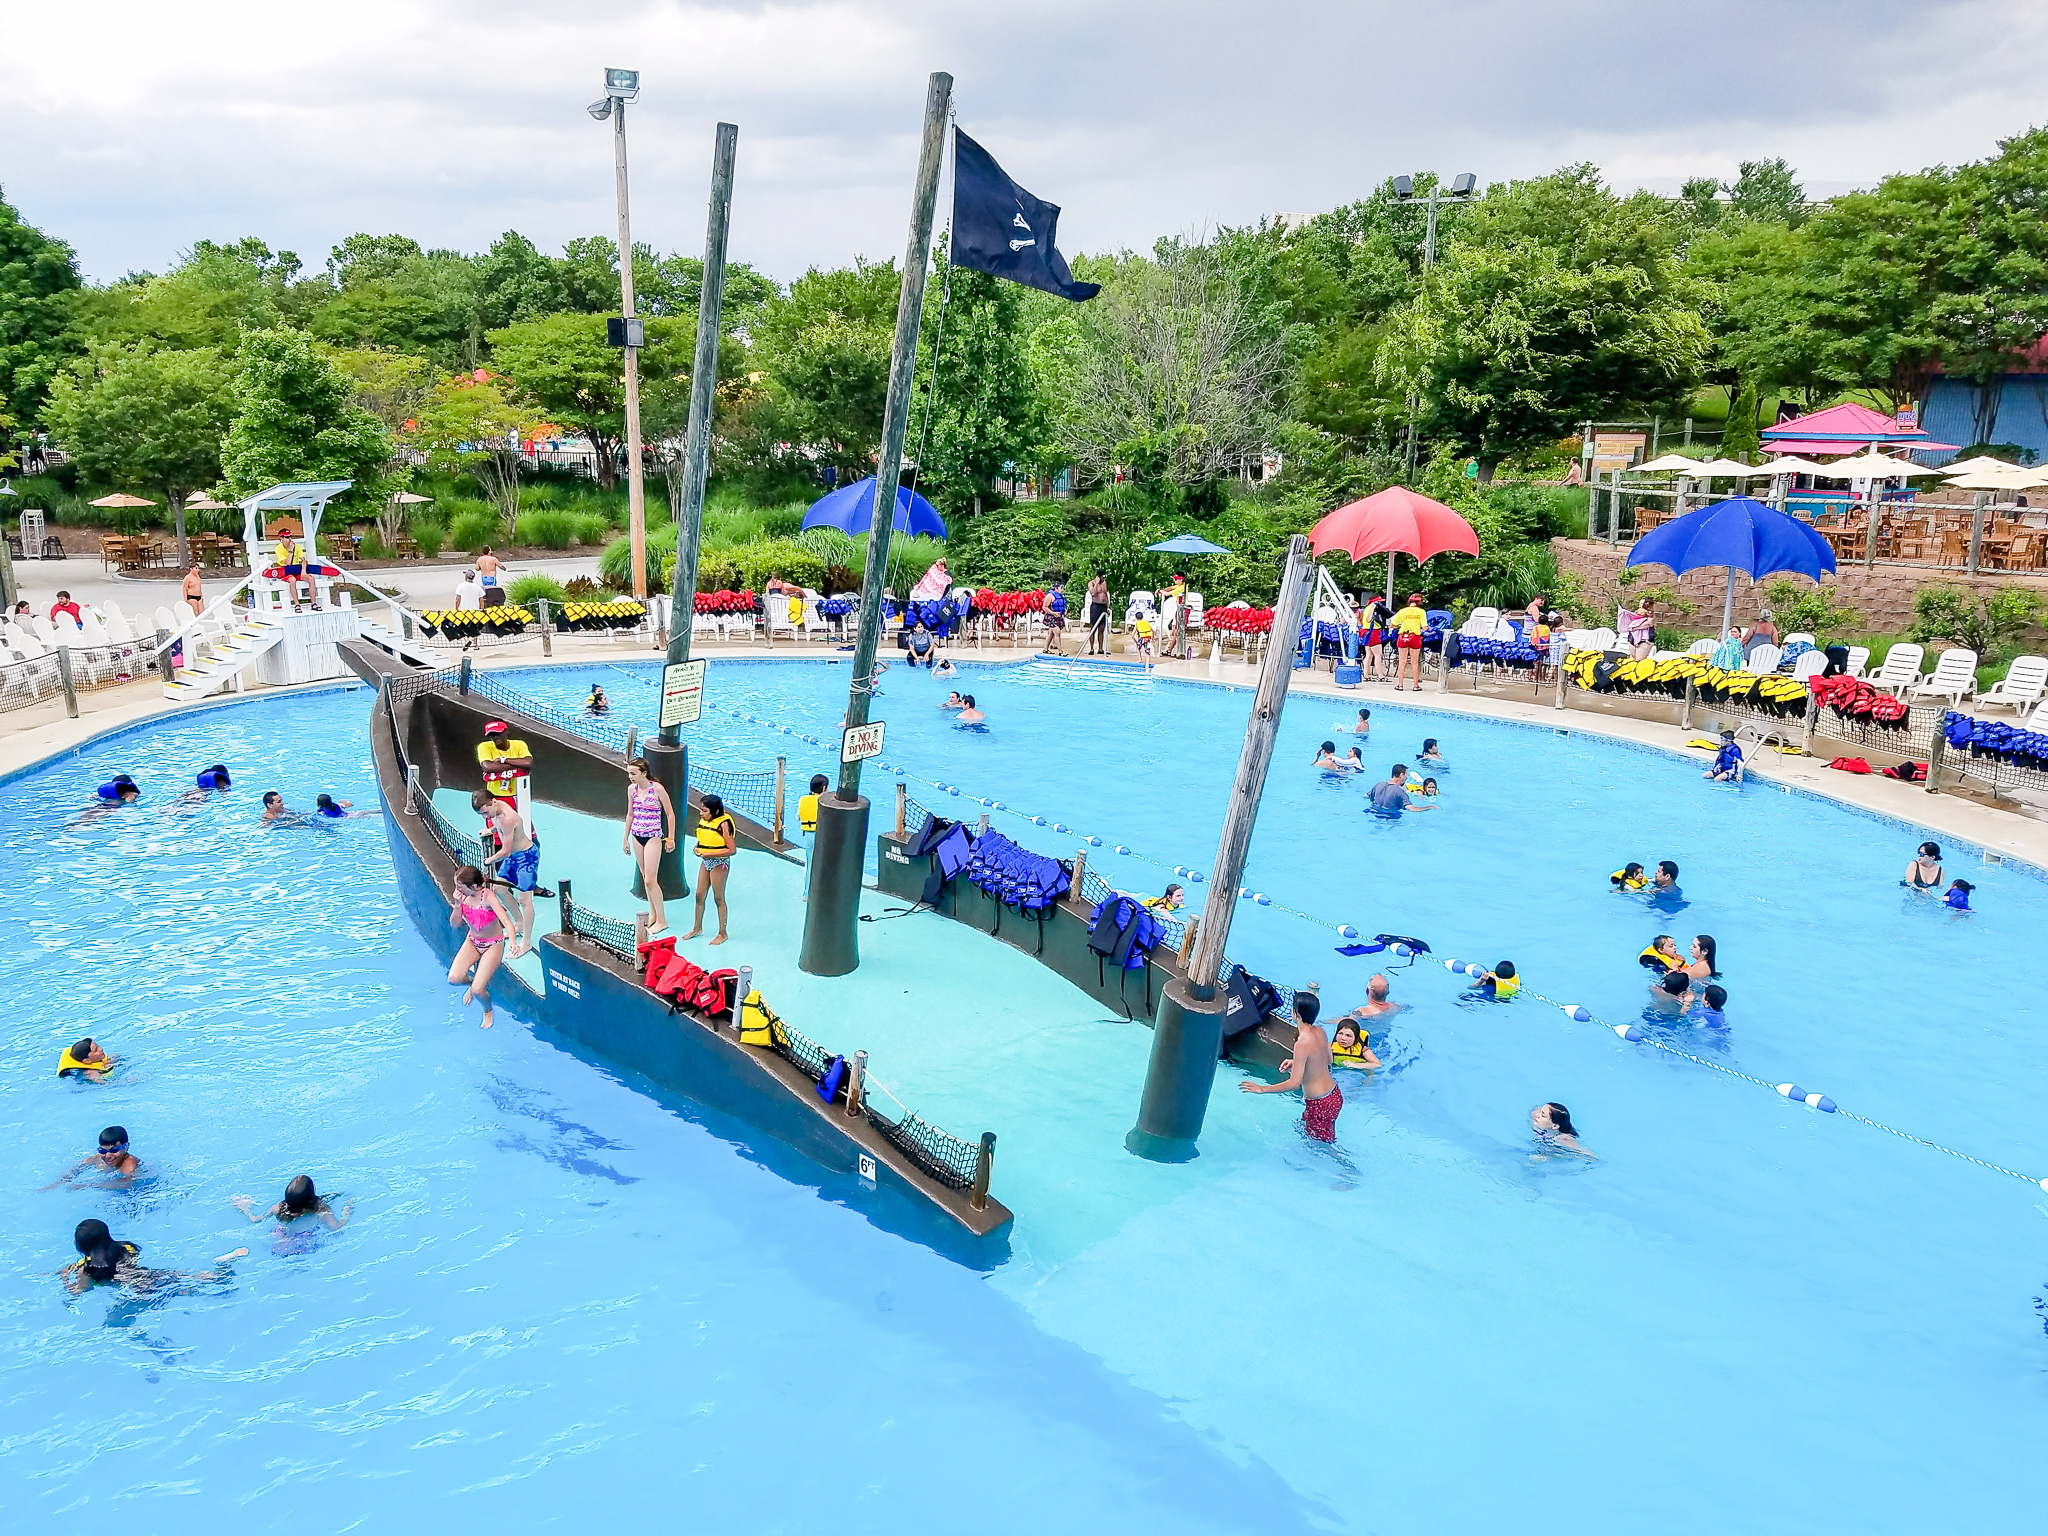 Summer is Here! It's Time to Visit Wet'N Wild Emerald Pointe